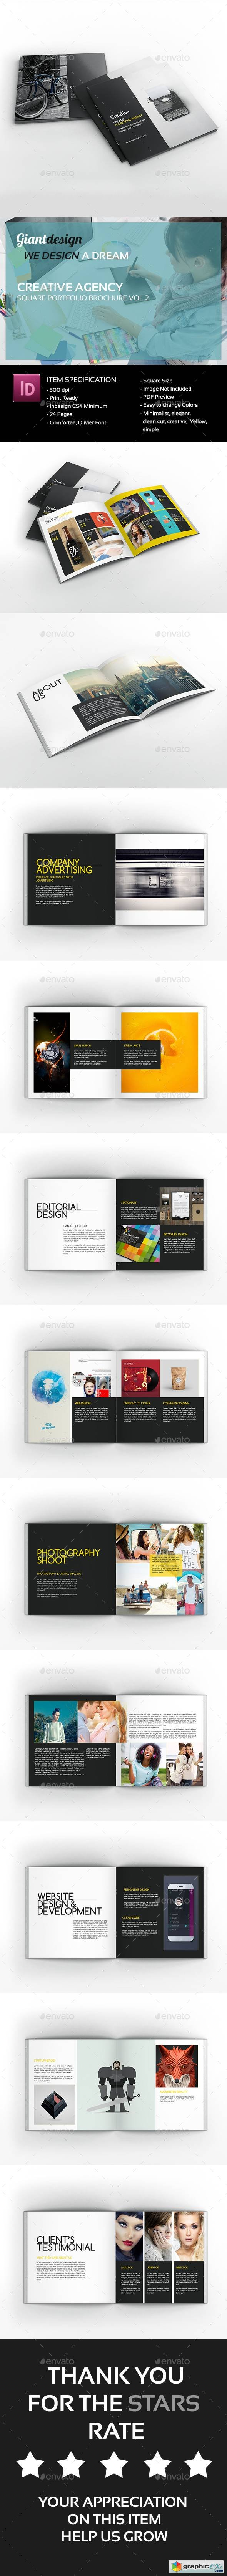 Creative Agency - Square Portfolio Brochure 20209482